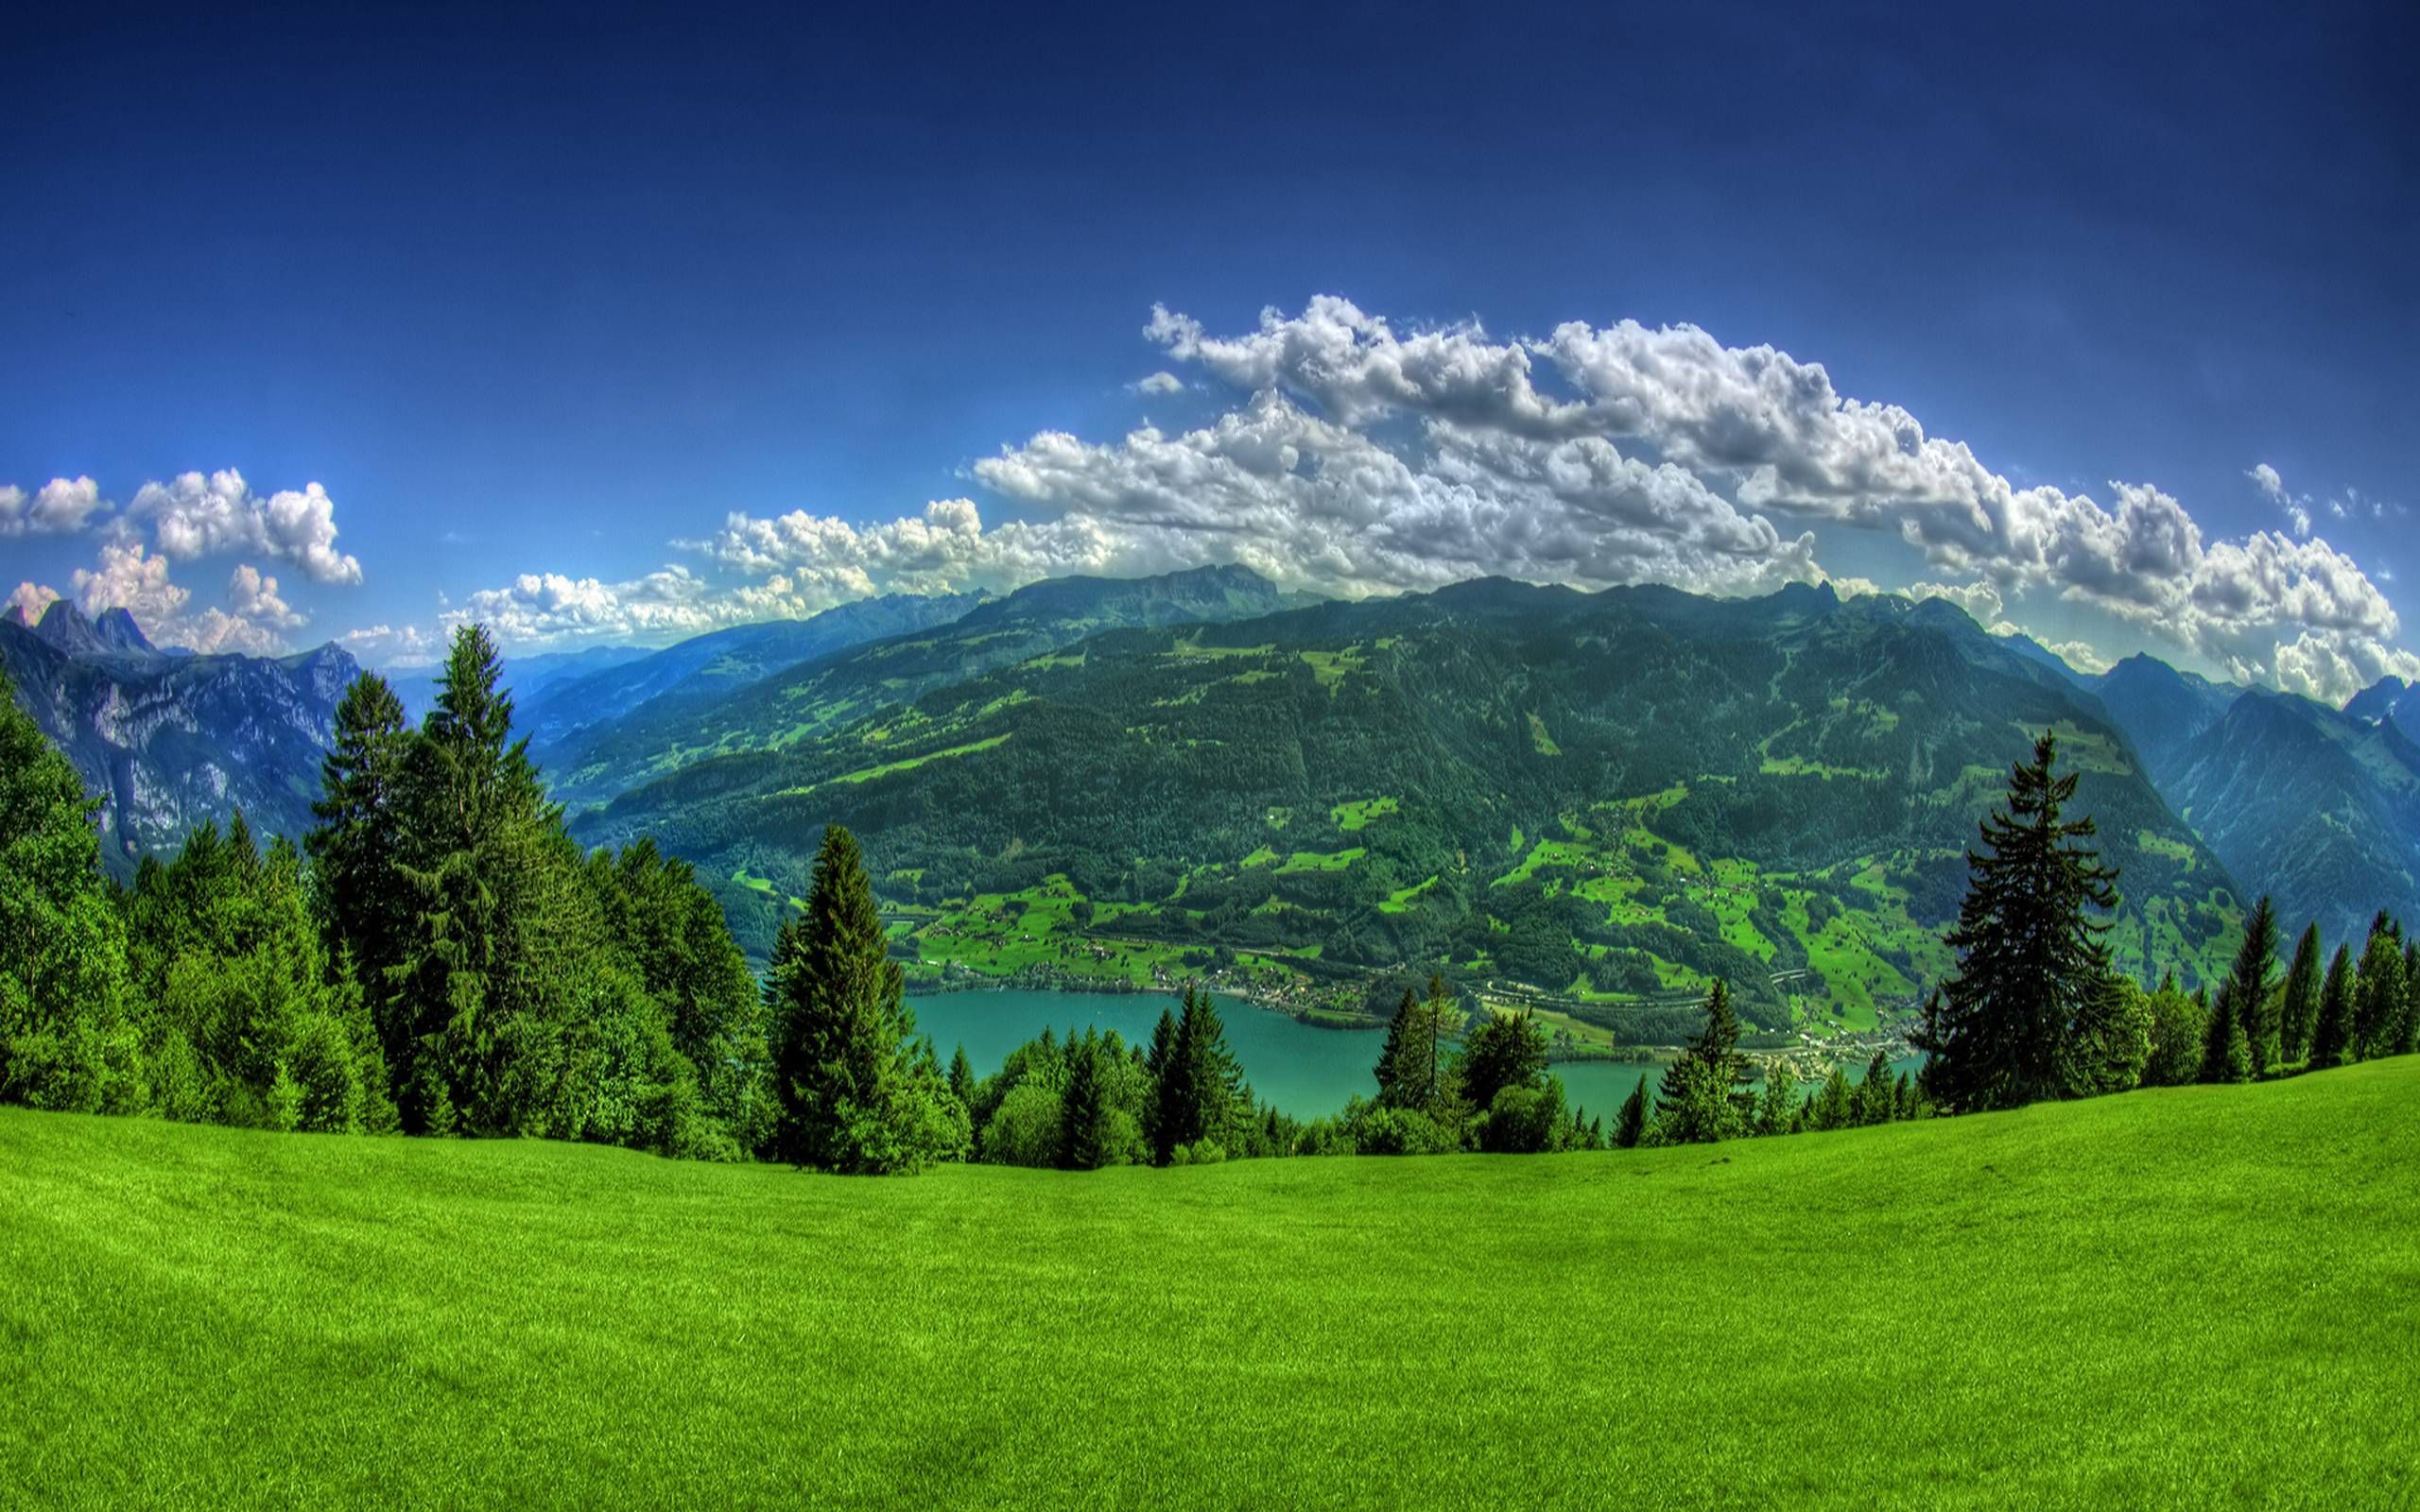 This Is Such A Peaceful Place To Sit And Think Walenstadt Switzerland 2560x1600 Beautiful Nature Wallpaper Beautiful Nature Summer Landscape